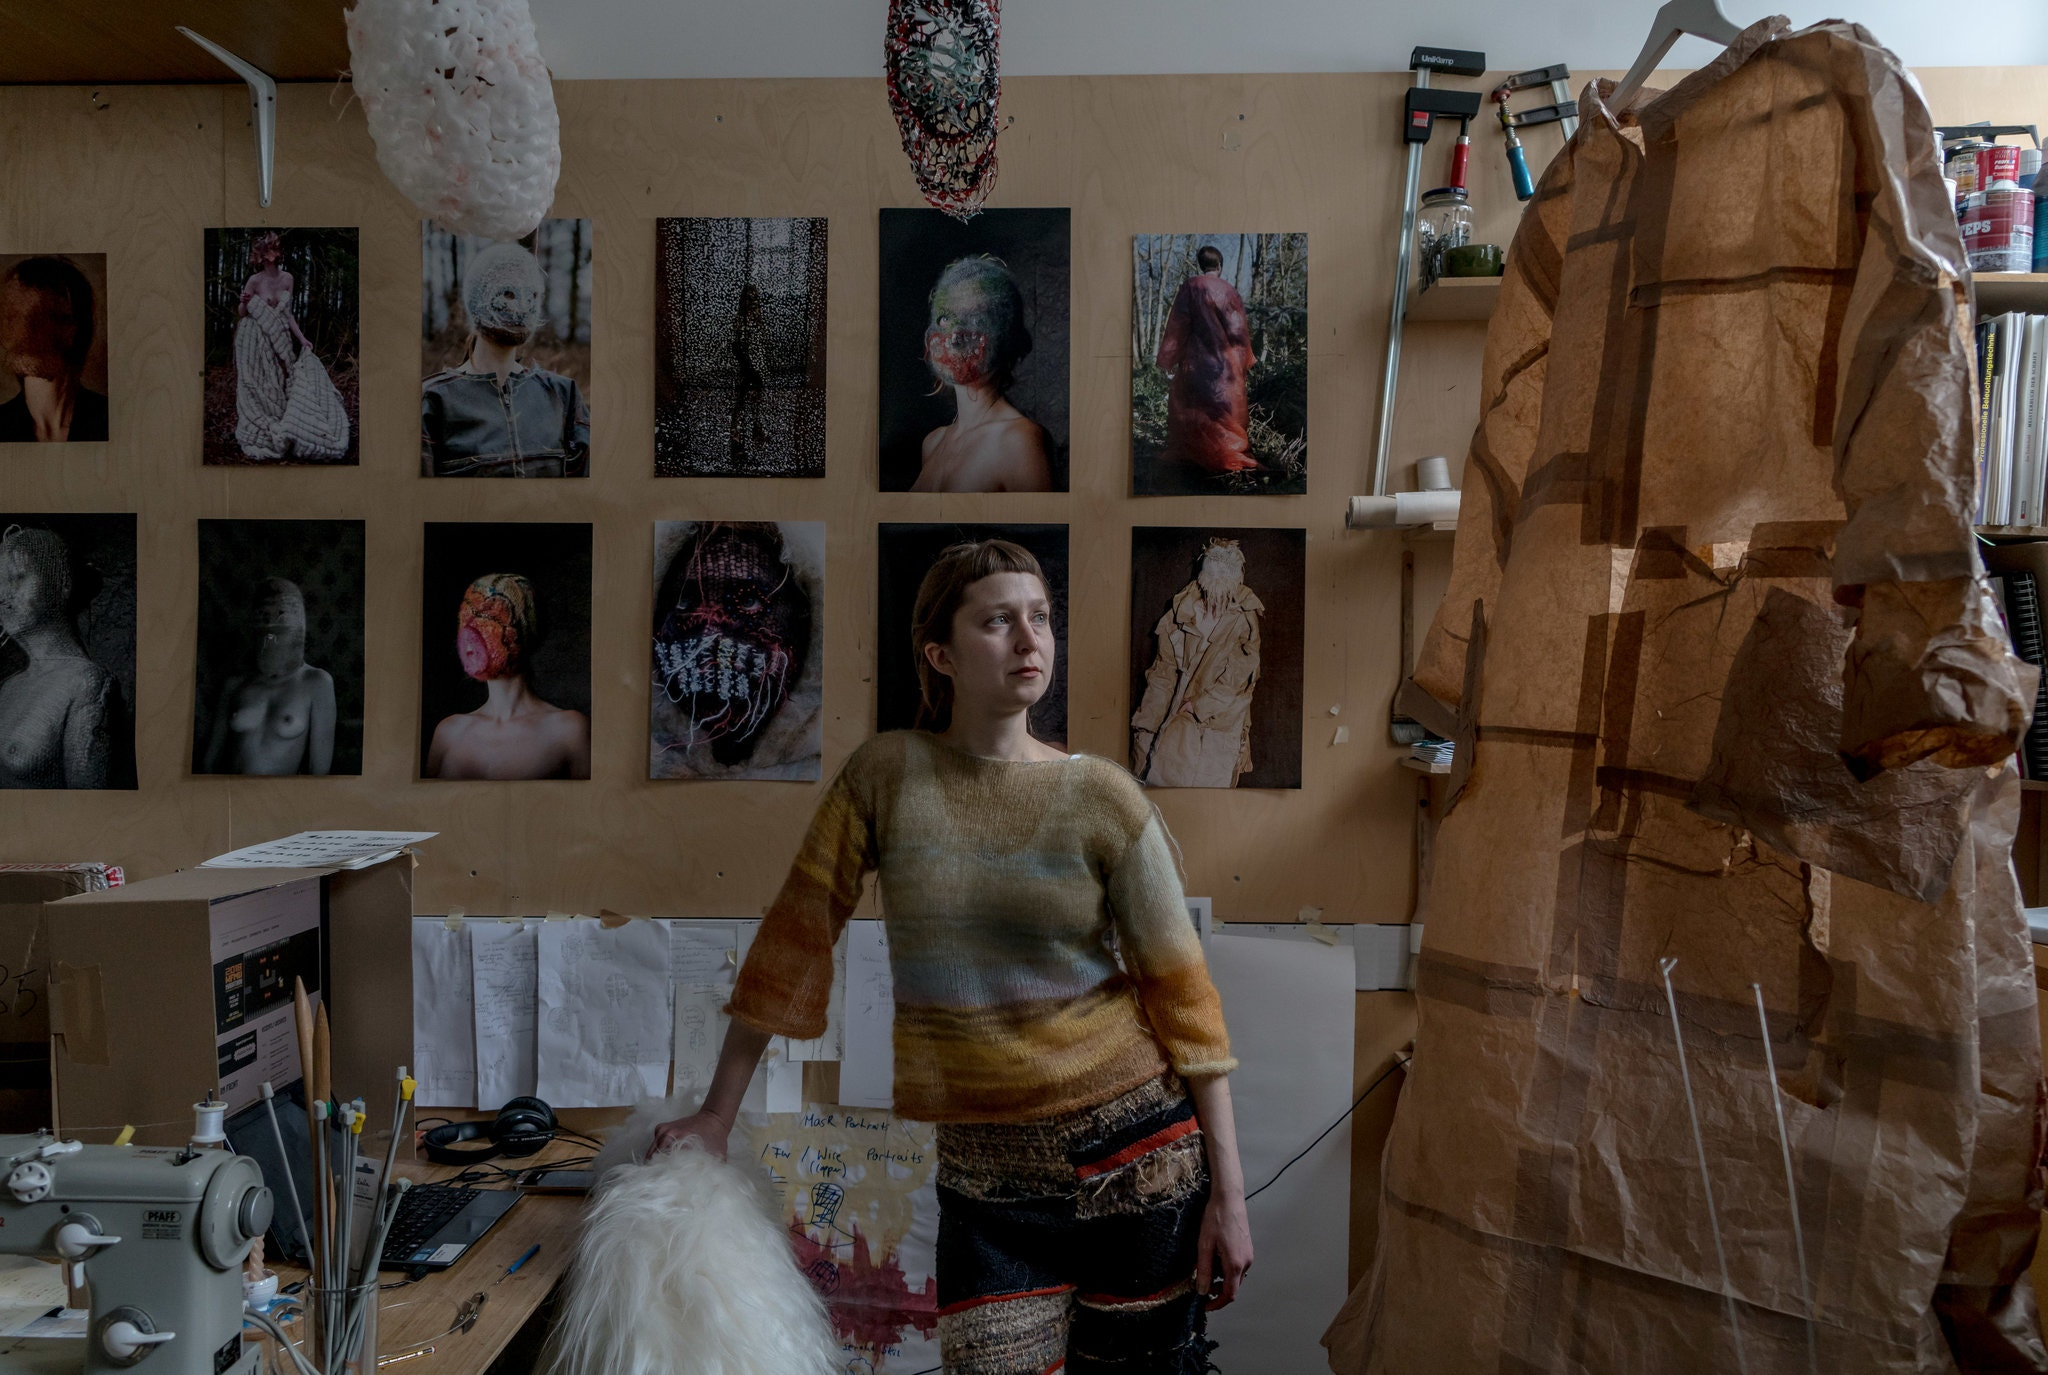 Jasmin Reif in her studio at the Sarabande Foundation in London By Andrew Testa for The New York Times